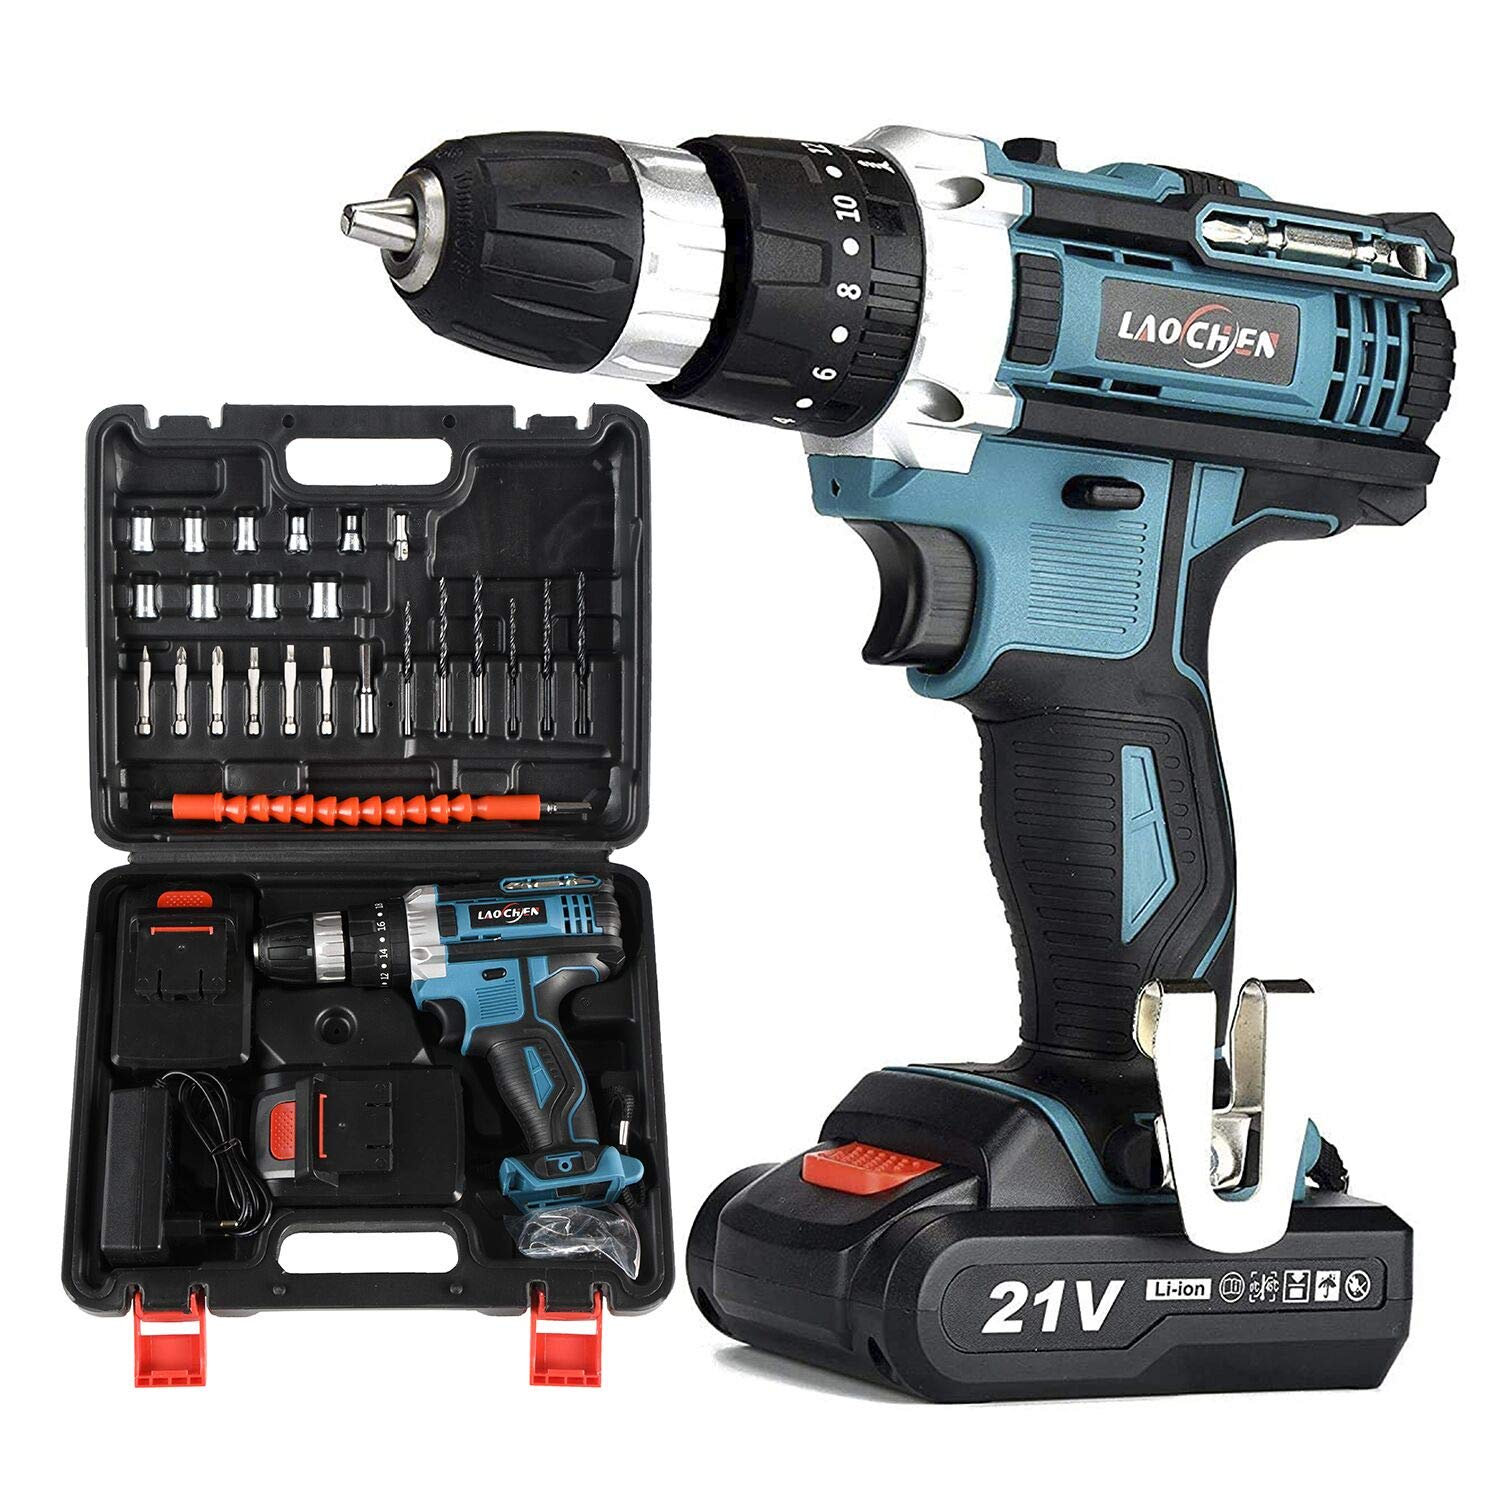 SP-Cow 21V Cordless Drill Driver with Kitbox, Electric Drill Set with powerful 2x1.5Ah Lithium Battery,32Nm Torque, 2-Speed,1H Fast Charging,LED Work Light,Power Tools for Home Improvement DIY Project